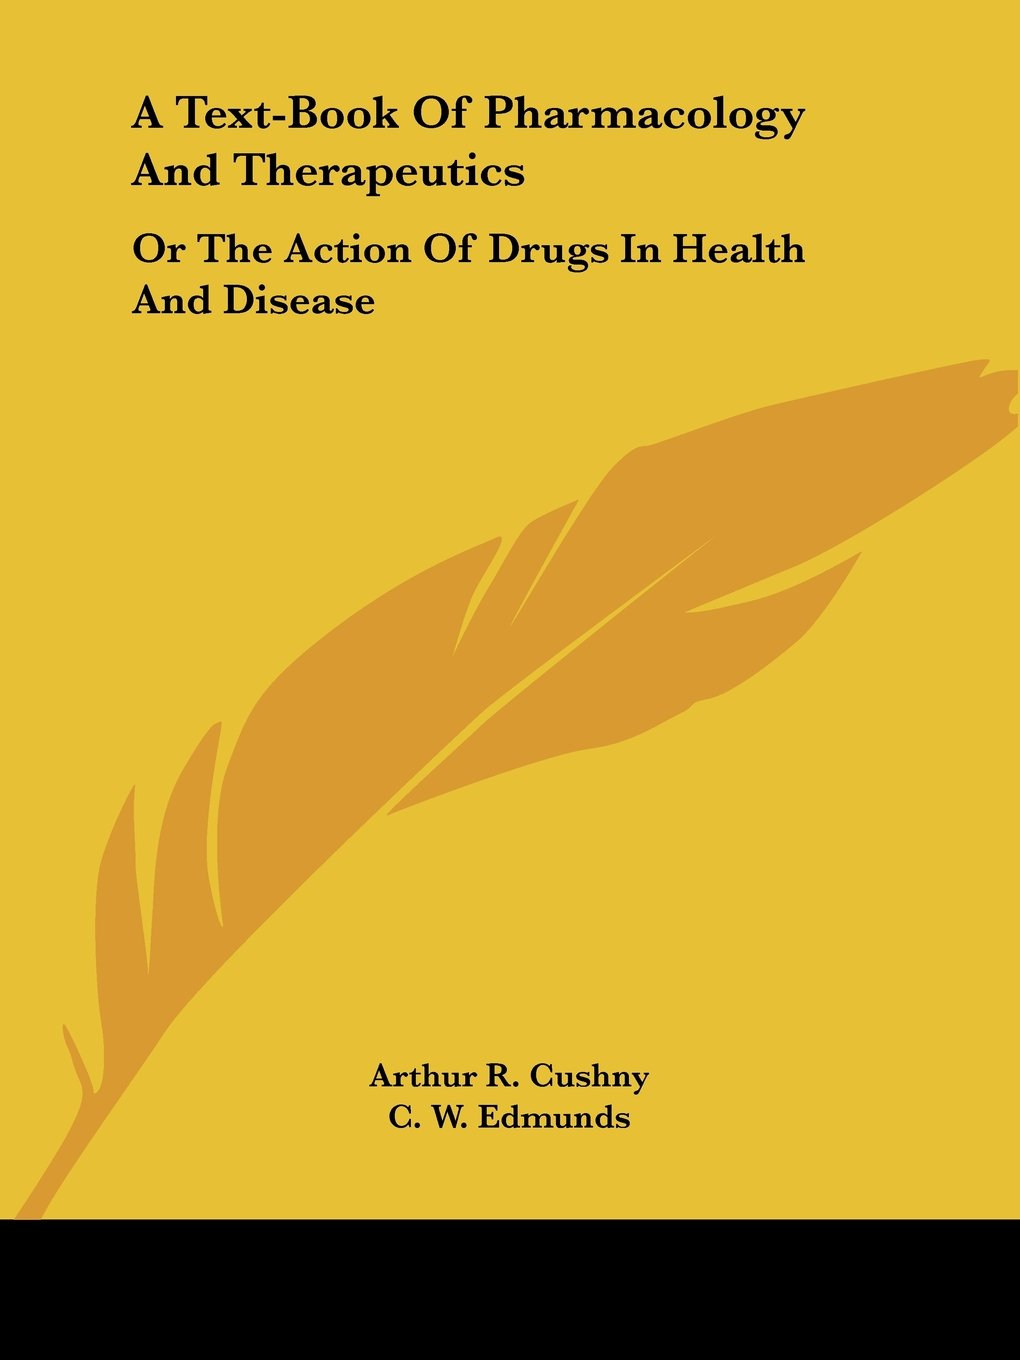 A Text-Book Of Pharmacology And Therapeutics: Or The Action Of Drugs In Health And Disease ebook